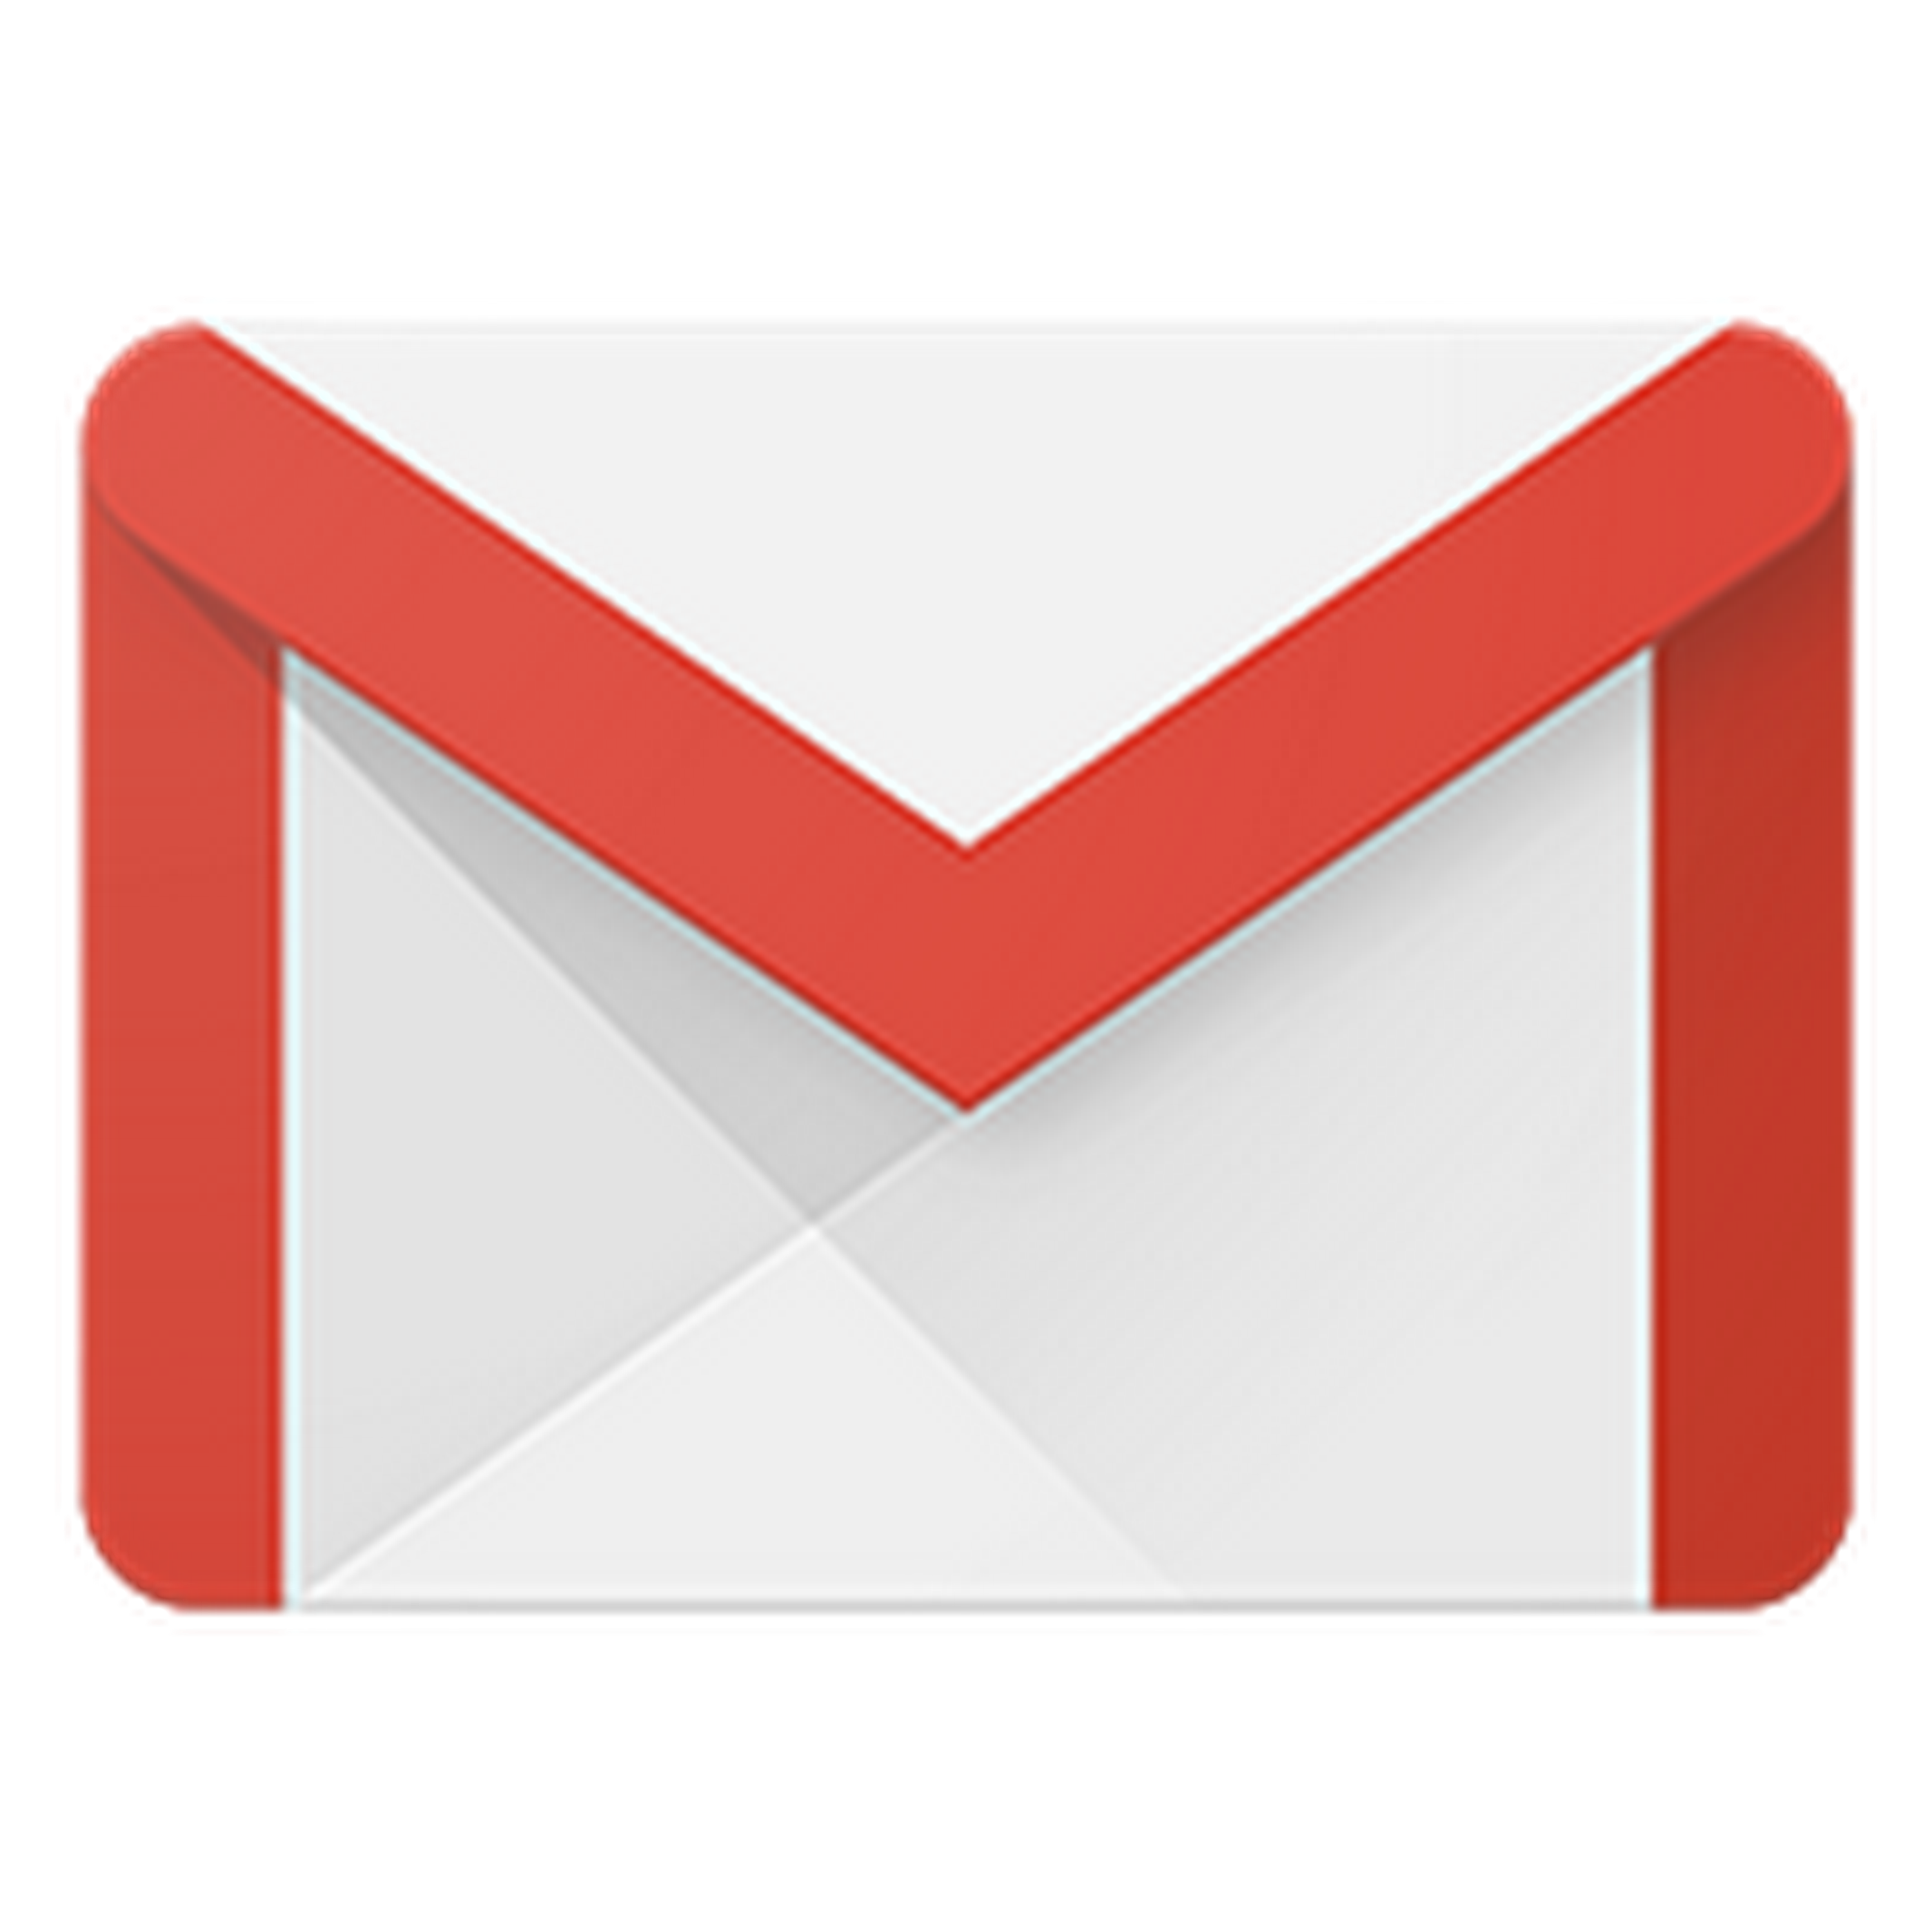 Icons Computer Google Email Gmail Free Transparent Image HQ PNG Image